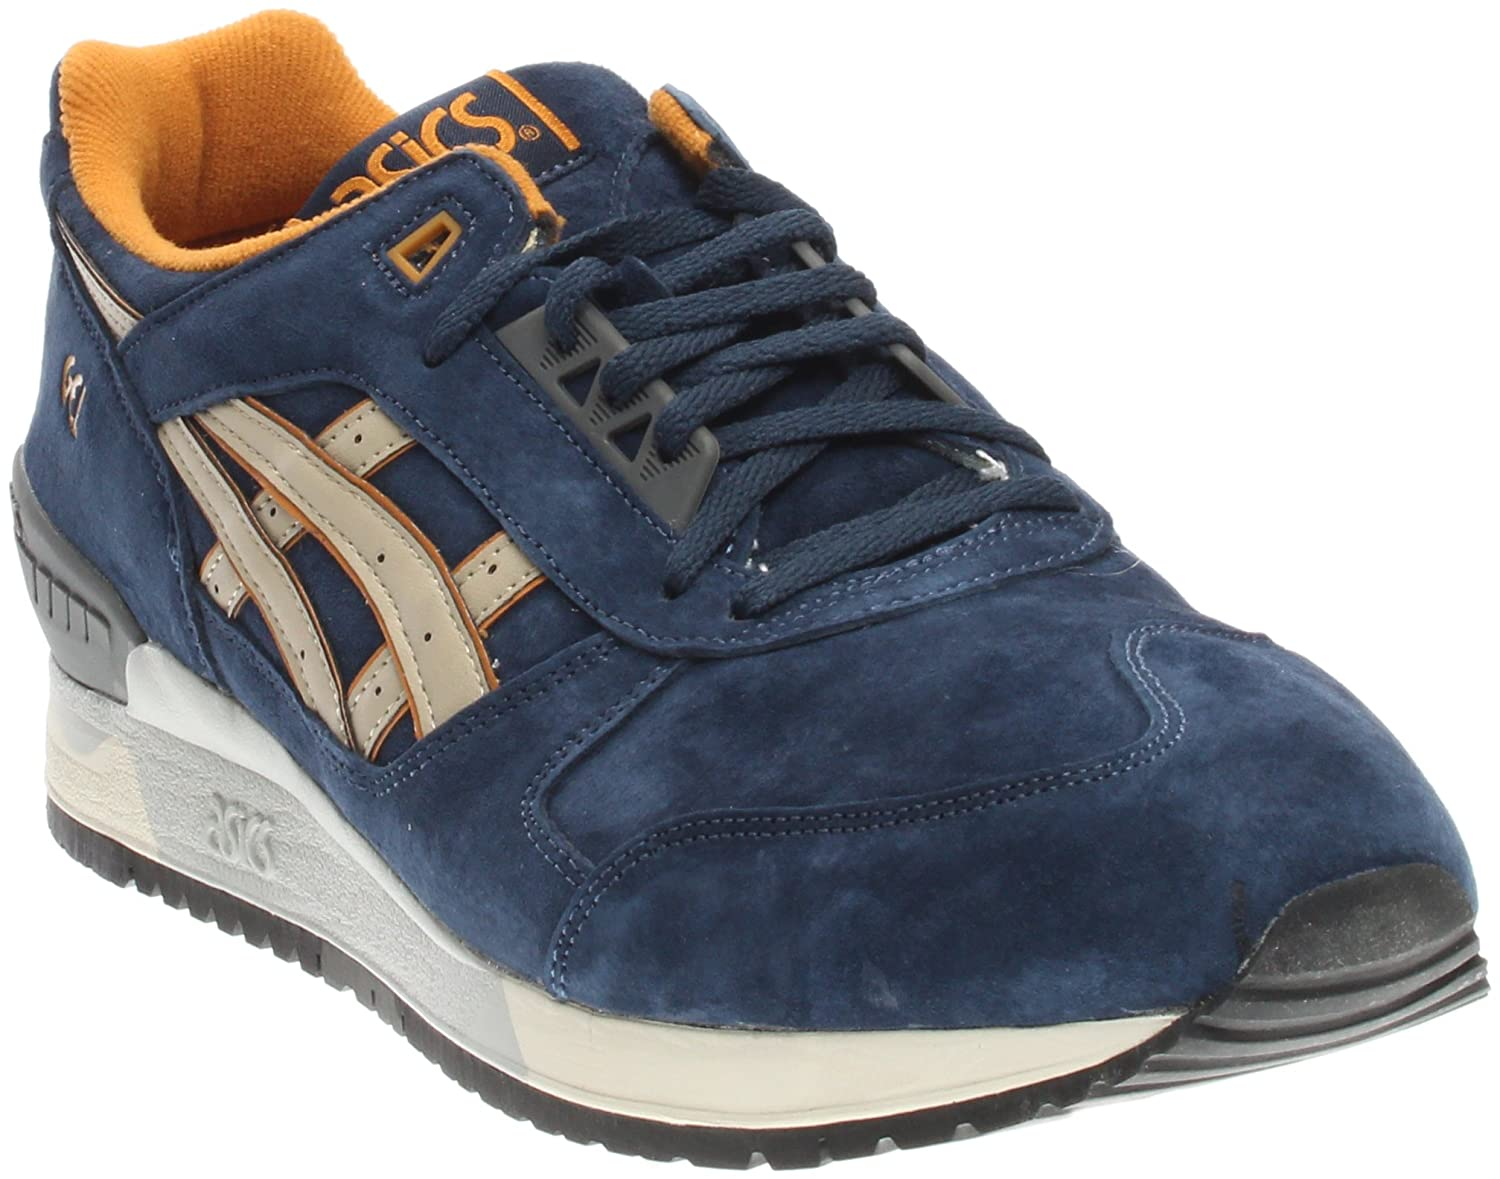 la moitié b9bc0 24016 ASICS Gel Respector (Premium Casual Pack) in in Navy/Sand by